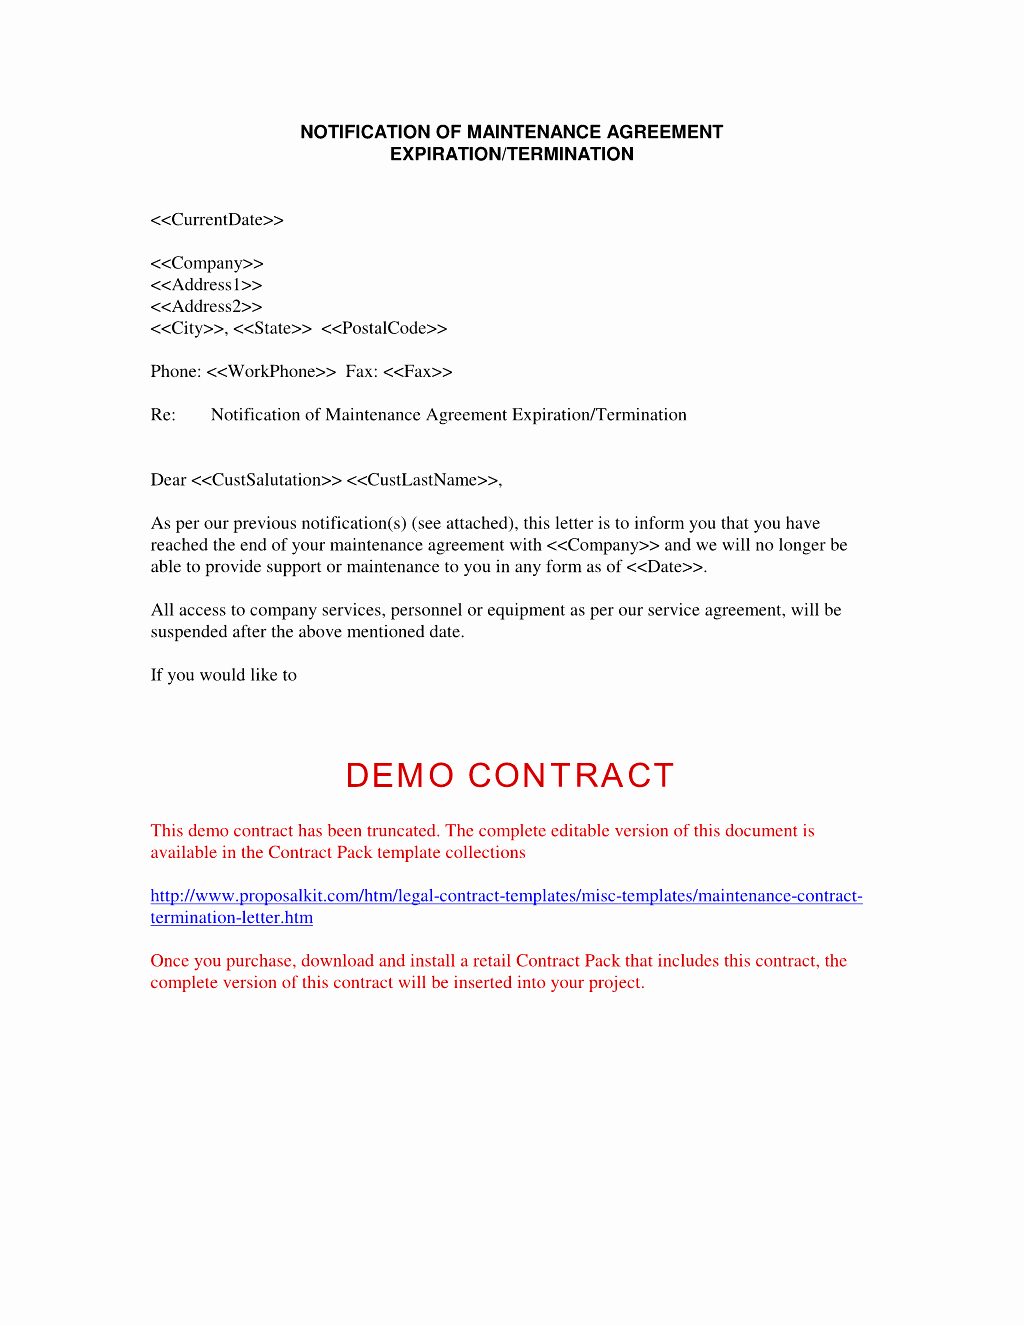 Attorney Termination Letter Template - Termination Contract Letter Example Elegant Termination attorney